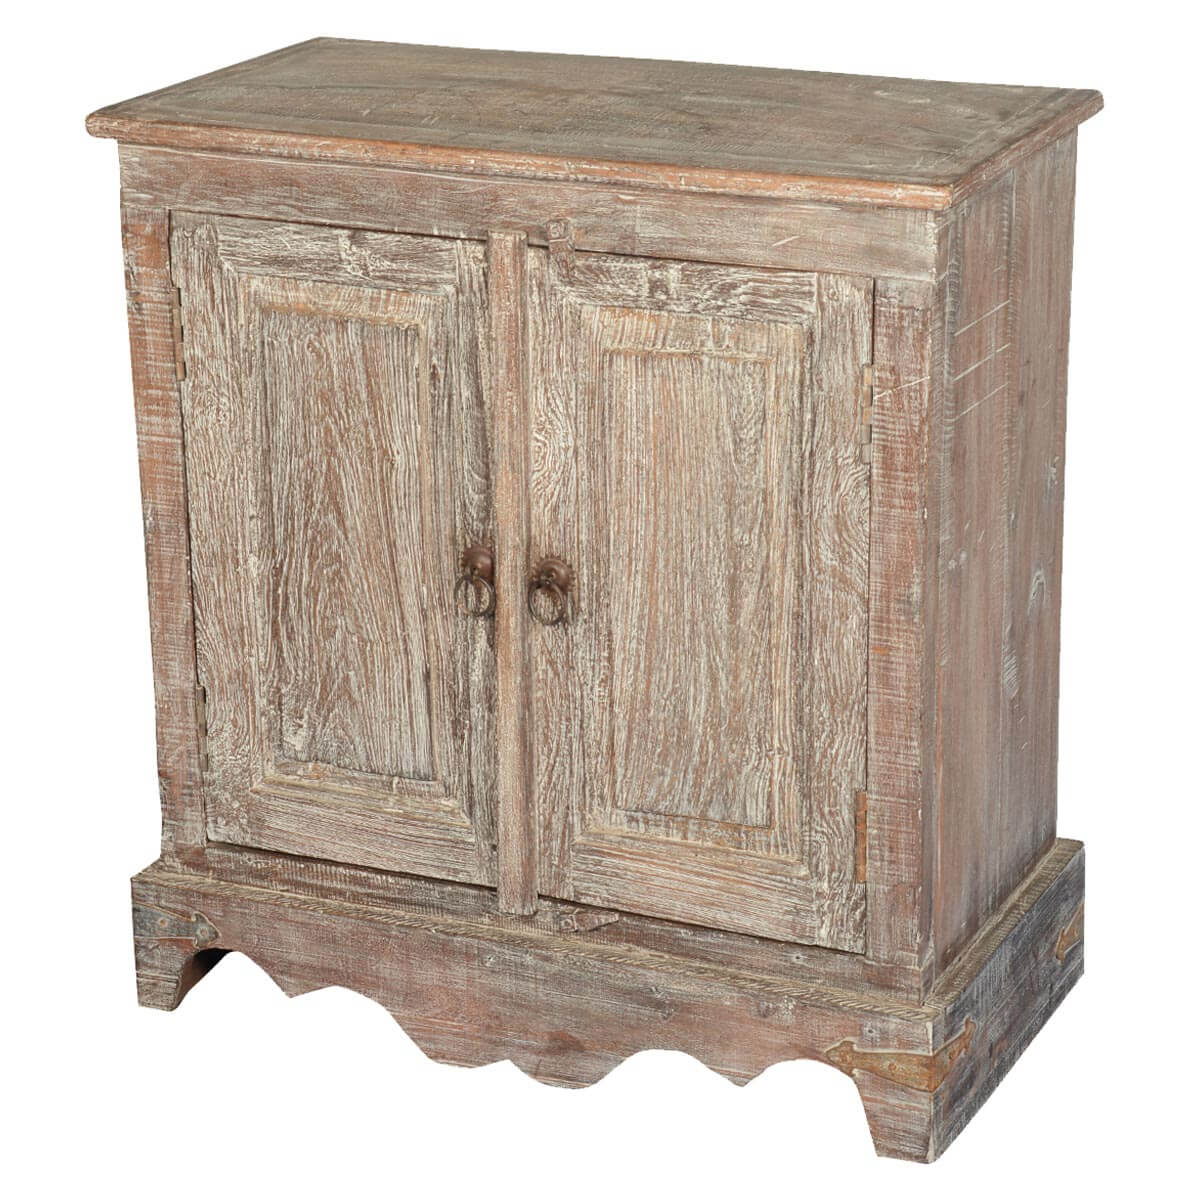 Reclaimed Wood Cabinets ~ Pennsylvania dutch rustic reclaimed wood door cabinet